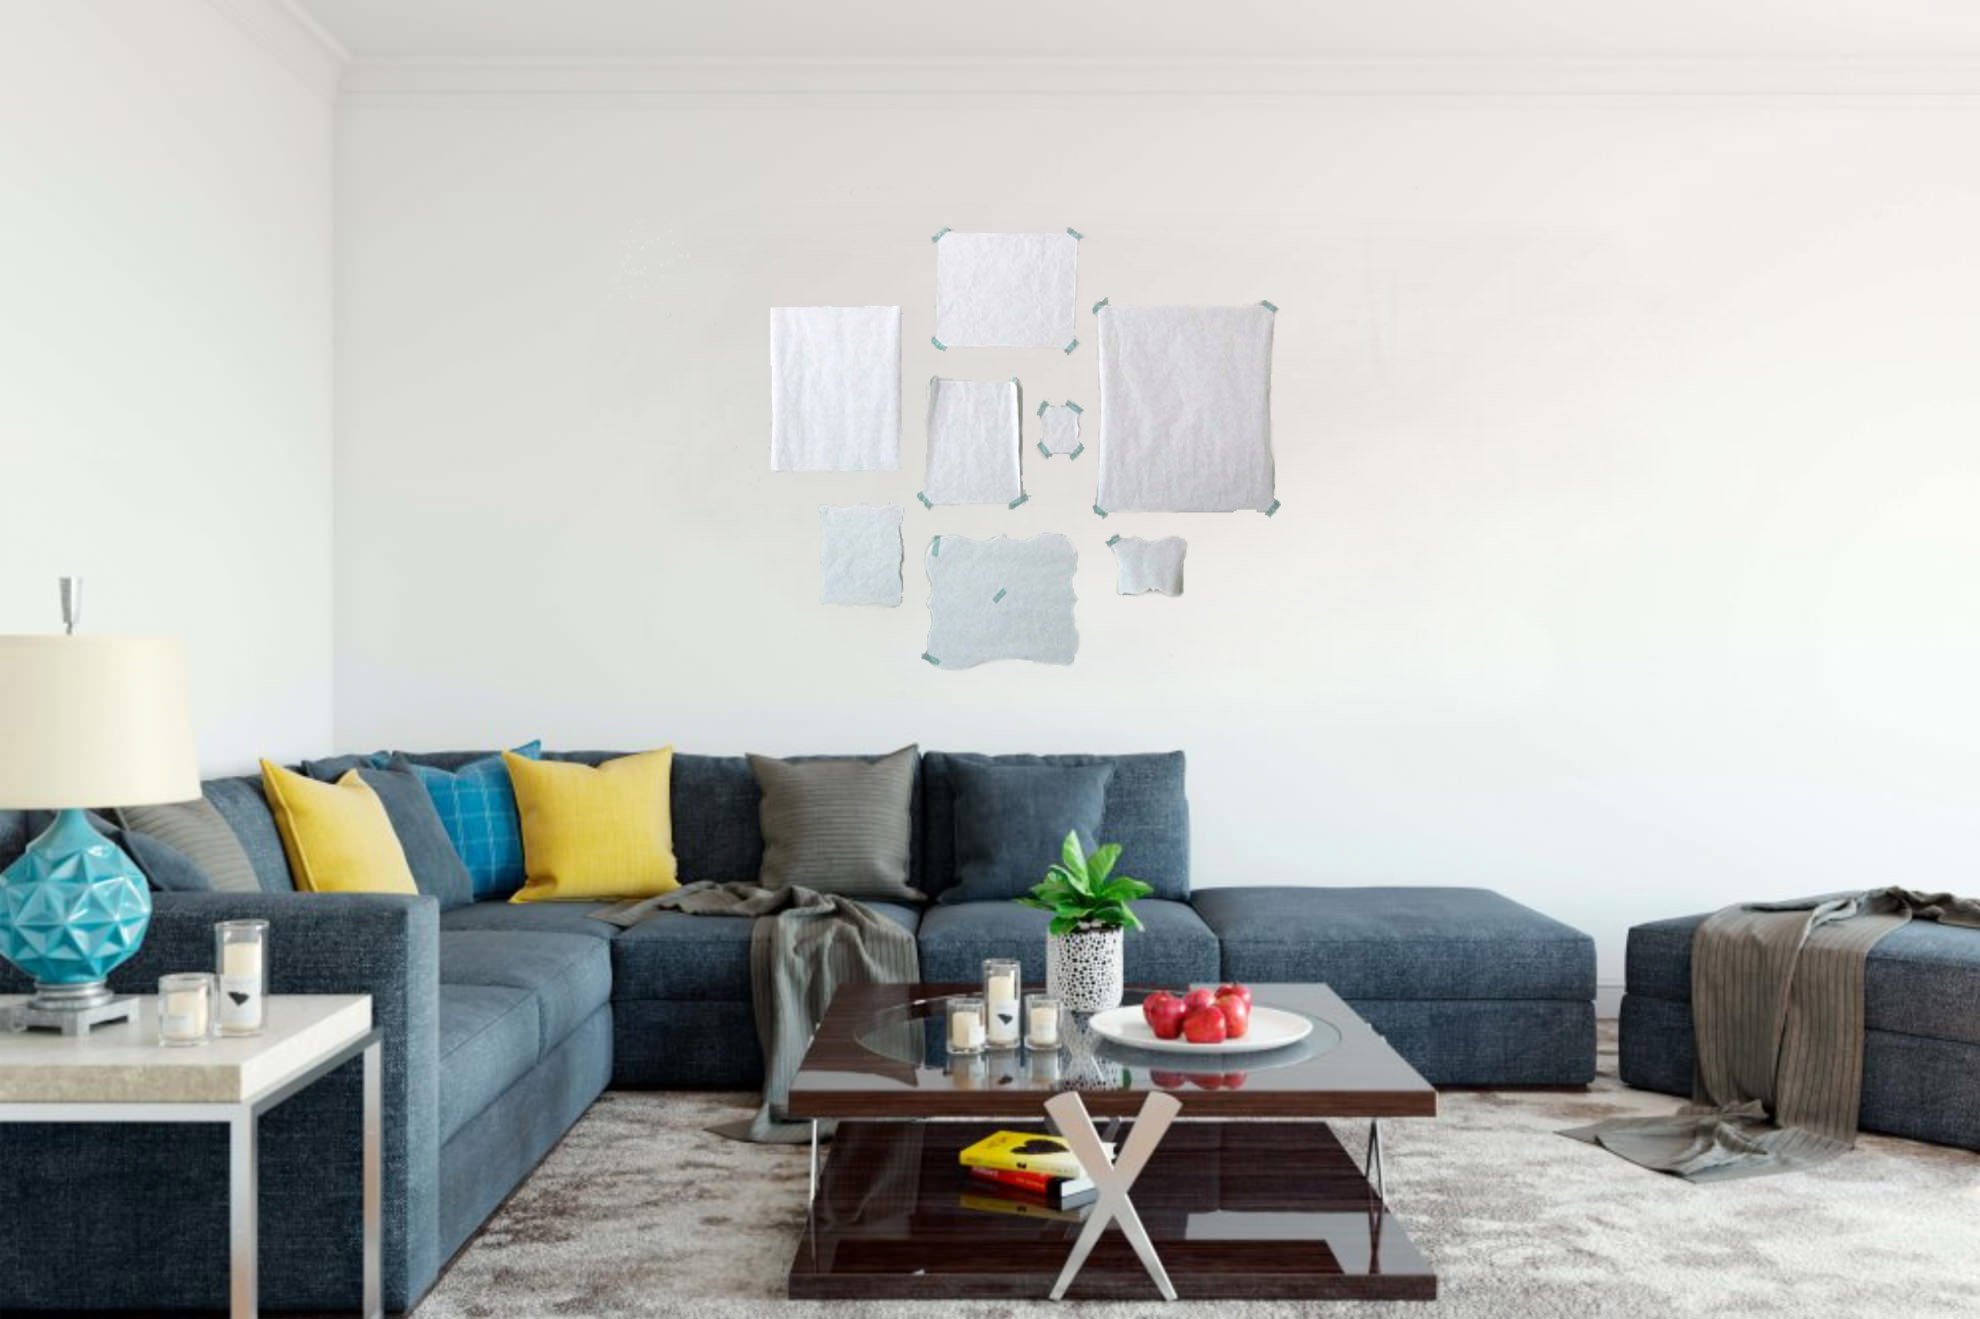 Using pieces of paper to make a template can be really handy when planning out a wall gallery